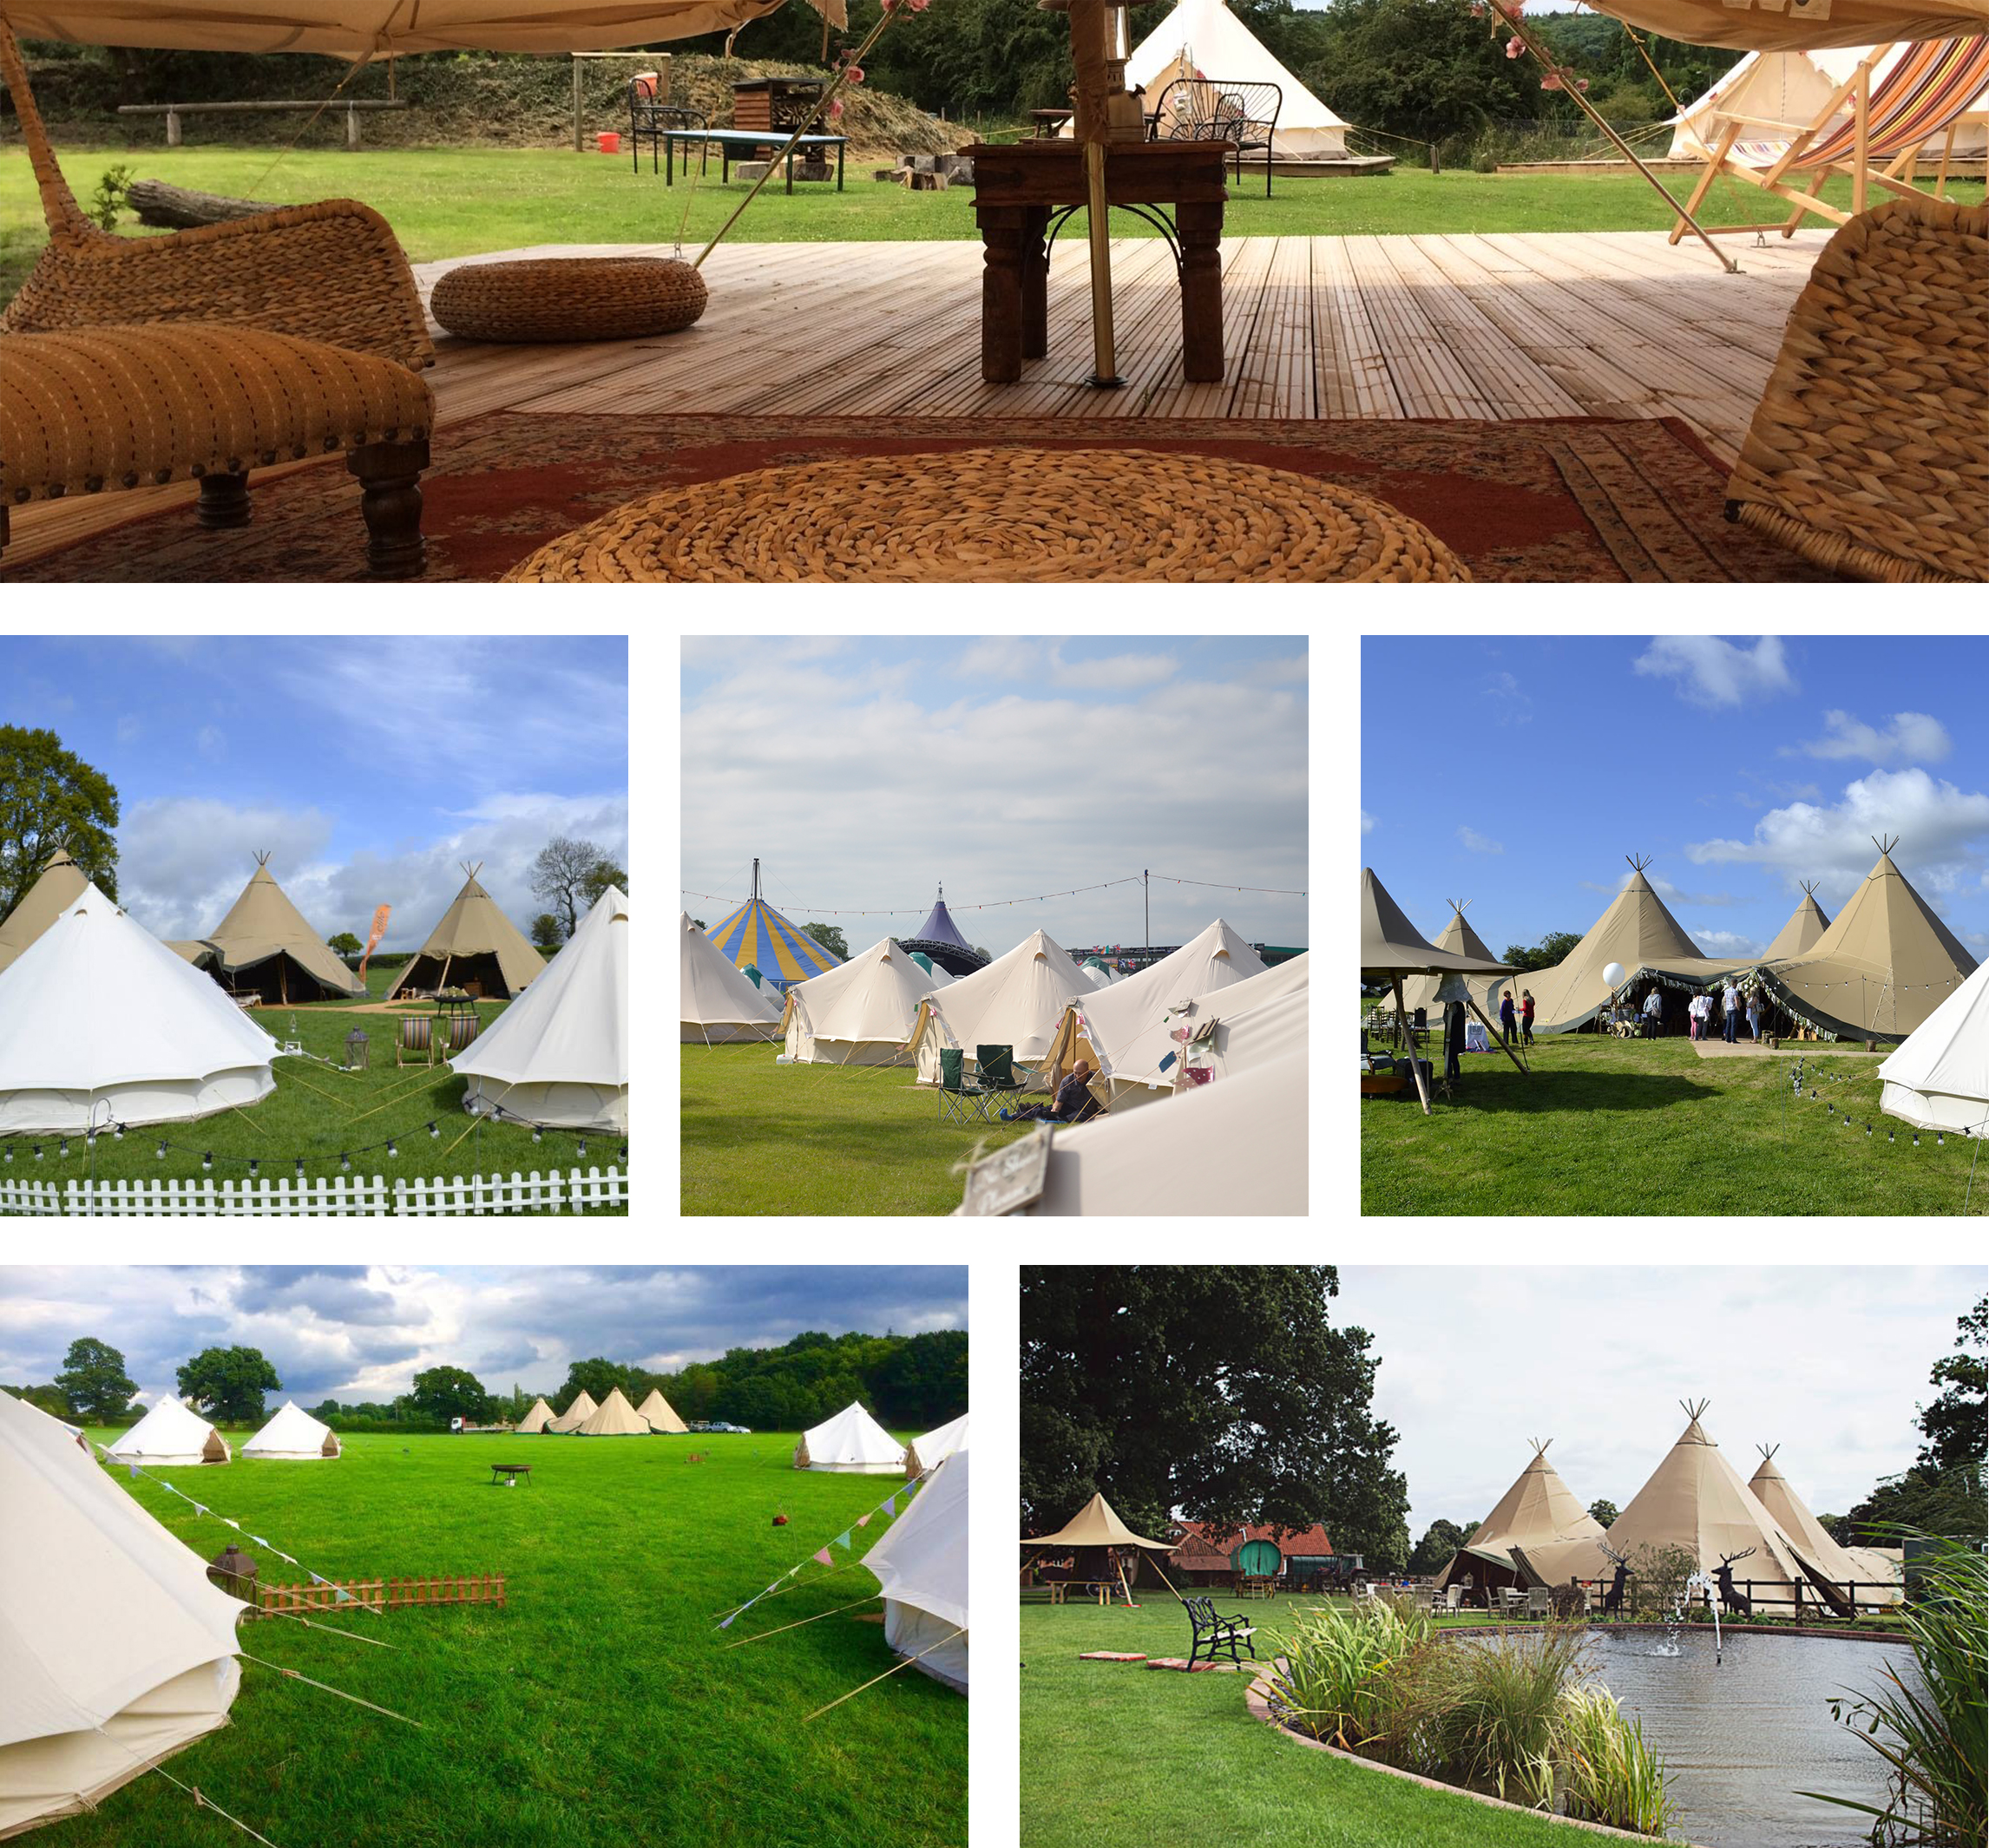 Image collage of Bell Tents set up for an event